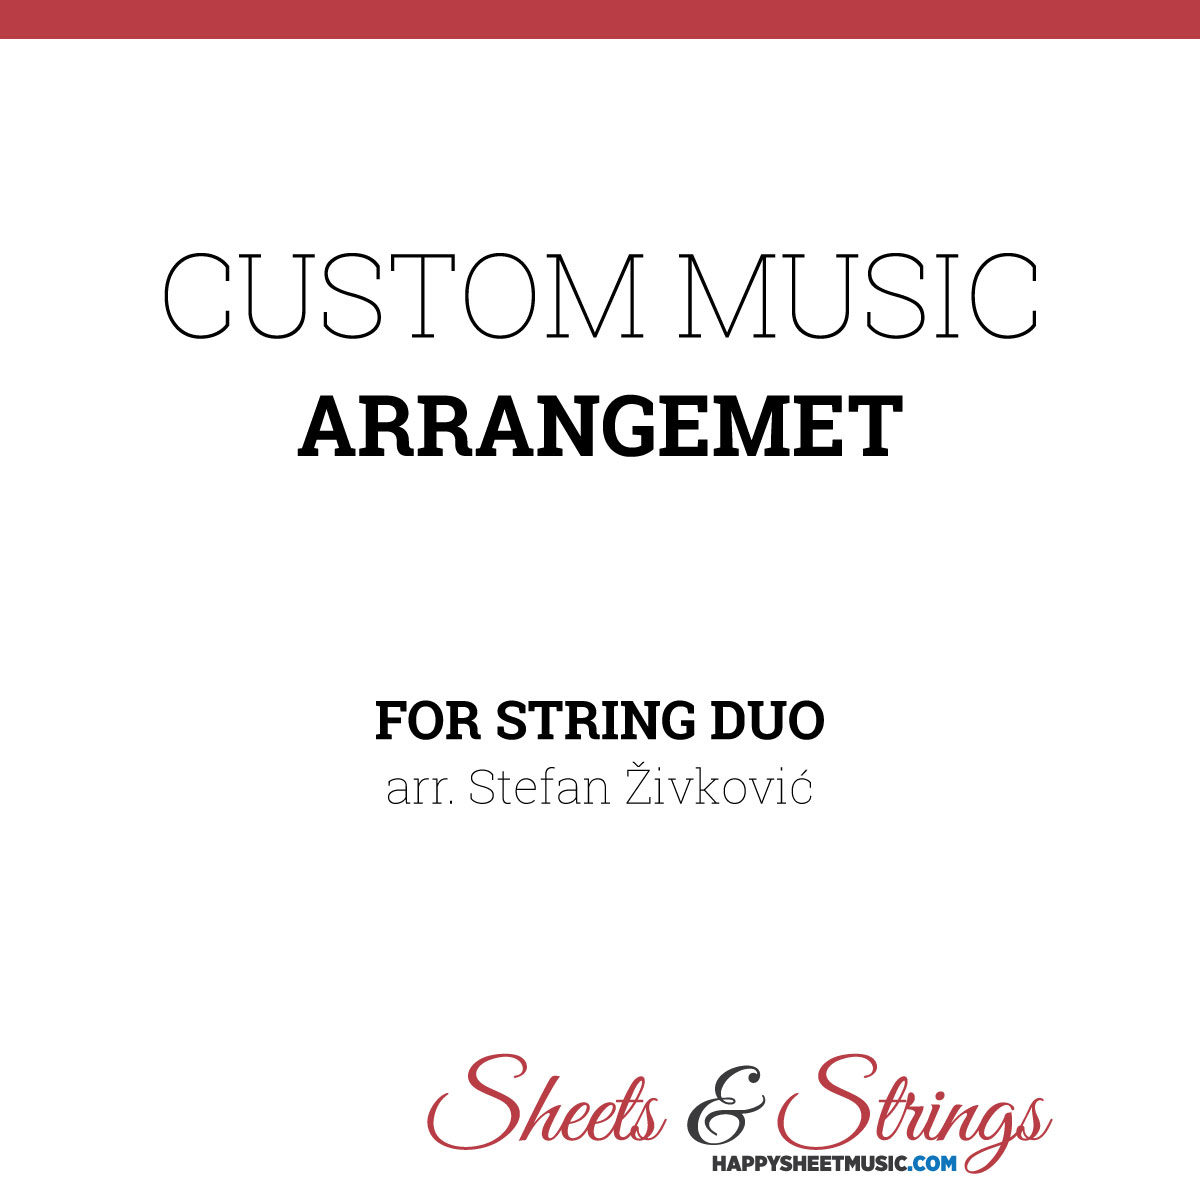 Custom Music Arrangement for String Duo